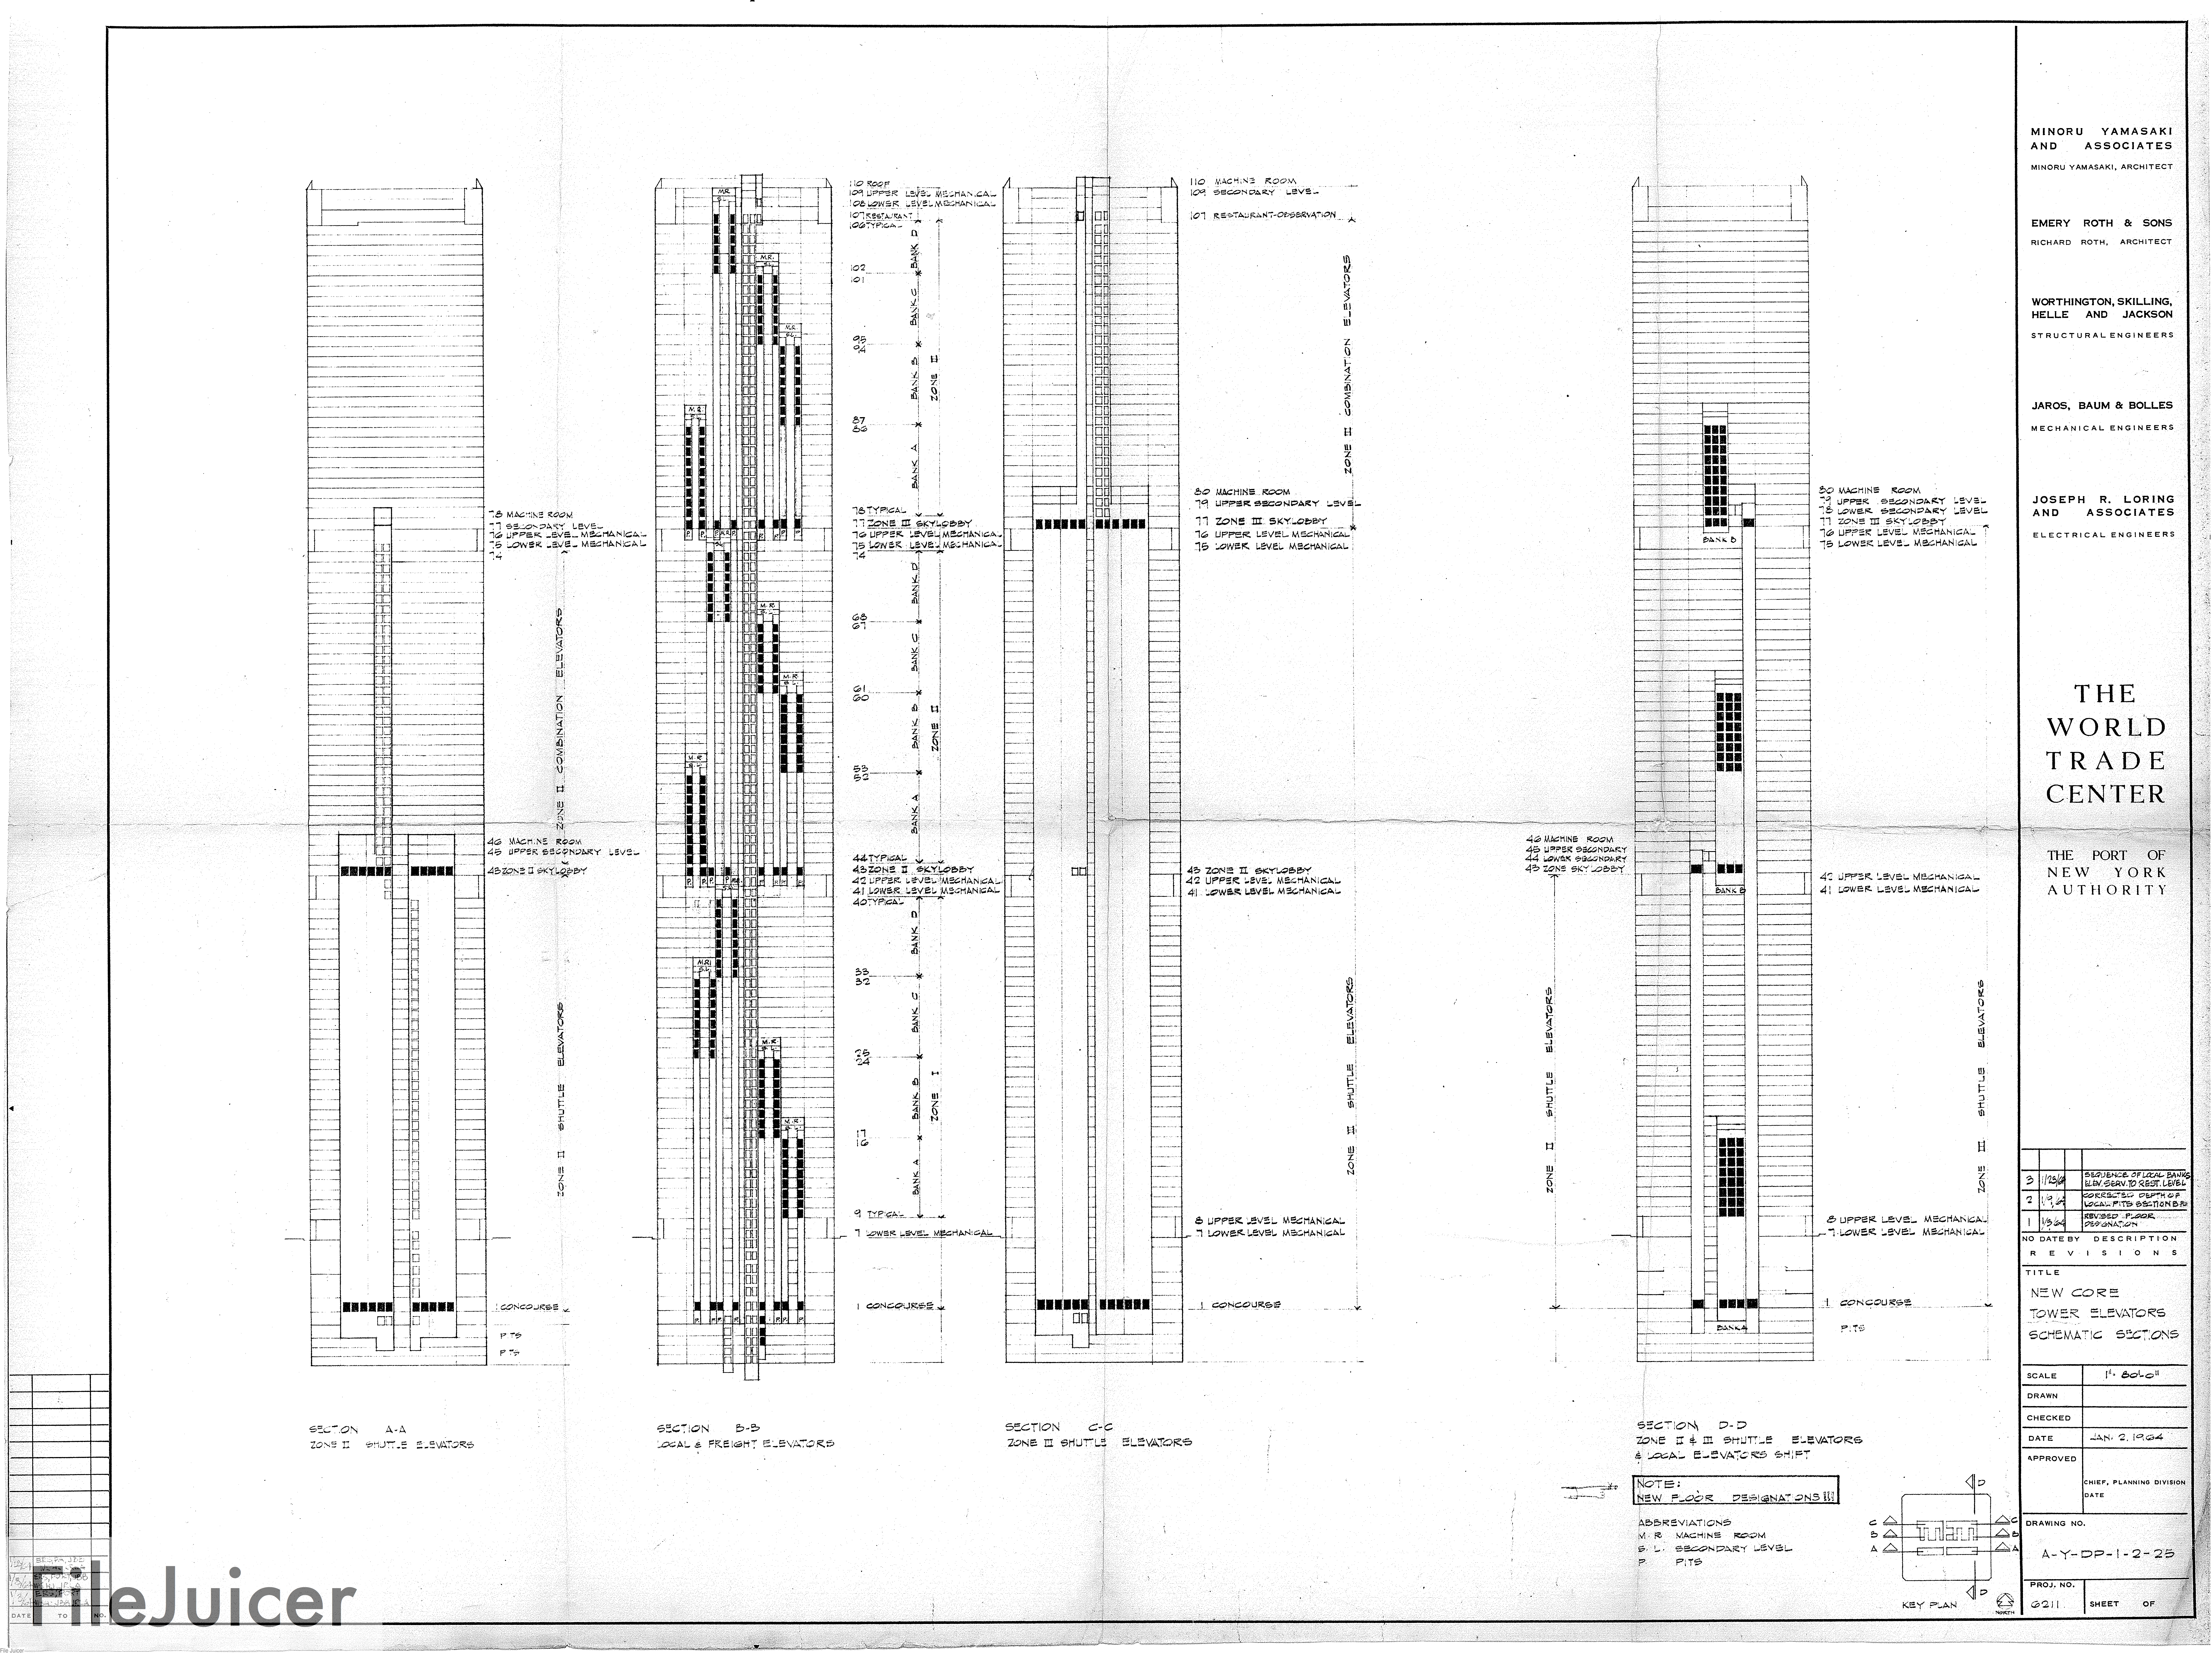 table of world trade center tower a drawings Diagram of World Trade Center Elevators newcoretowerelevations schematicsections